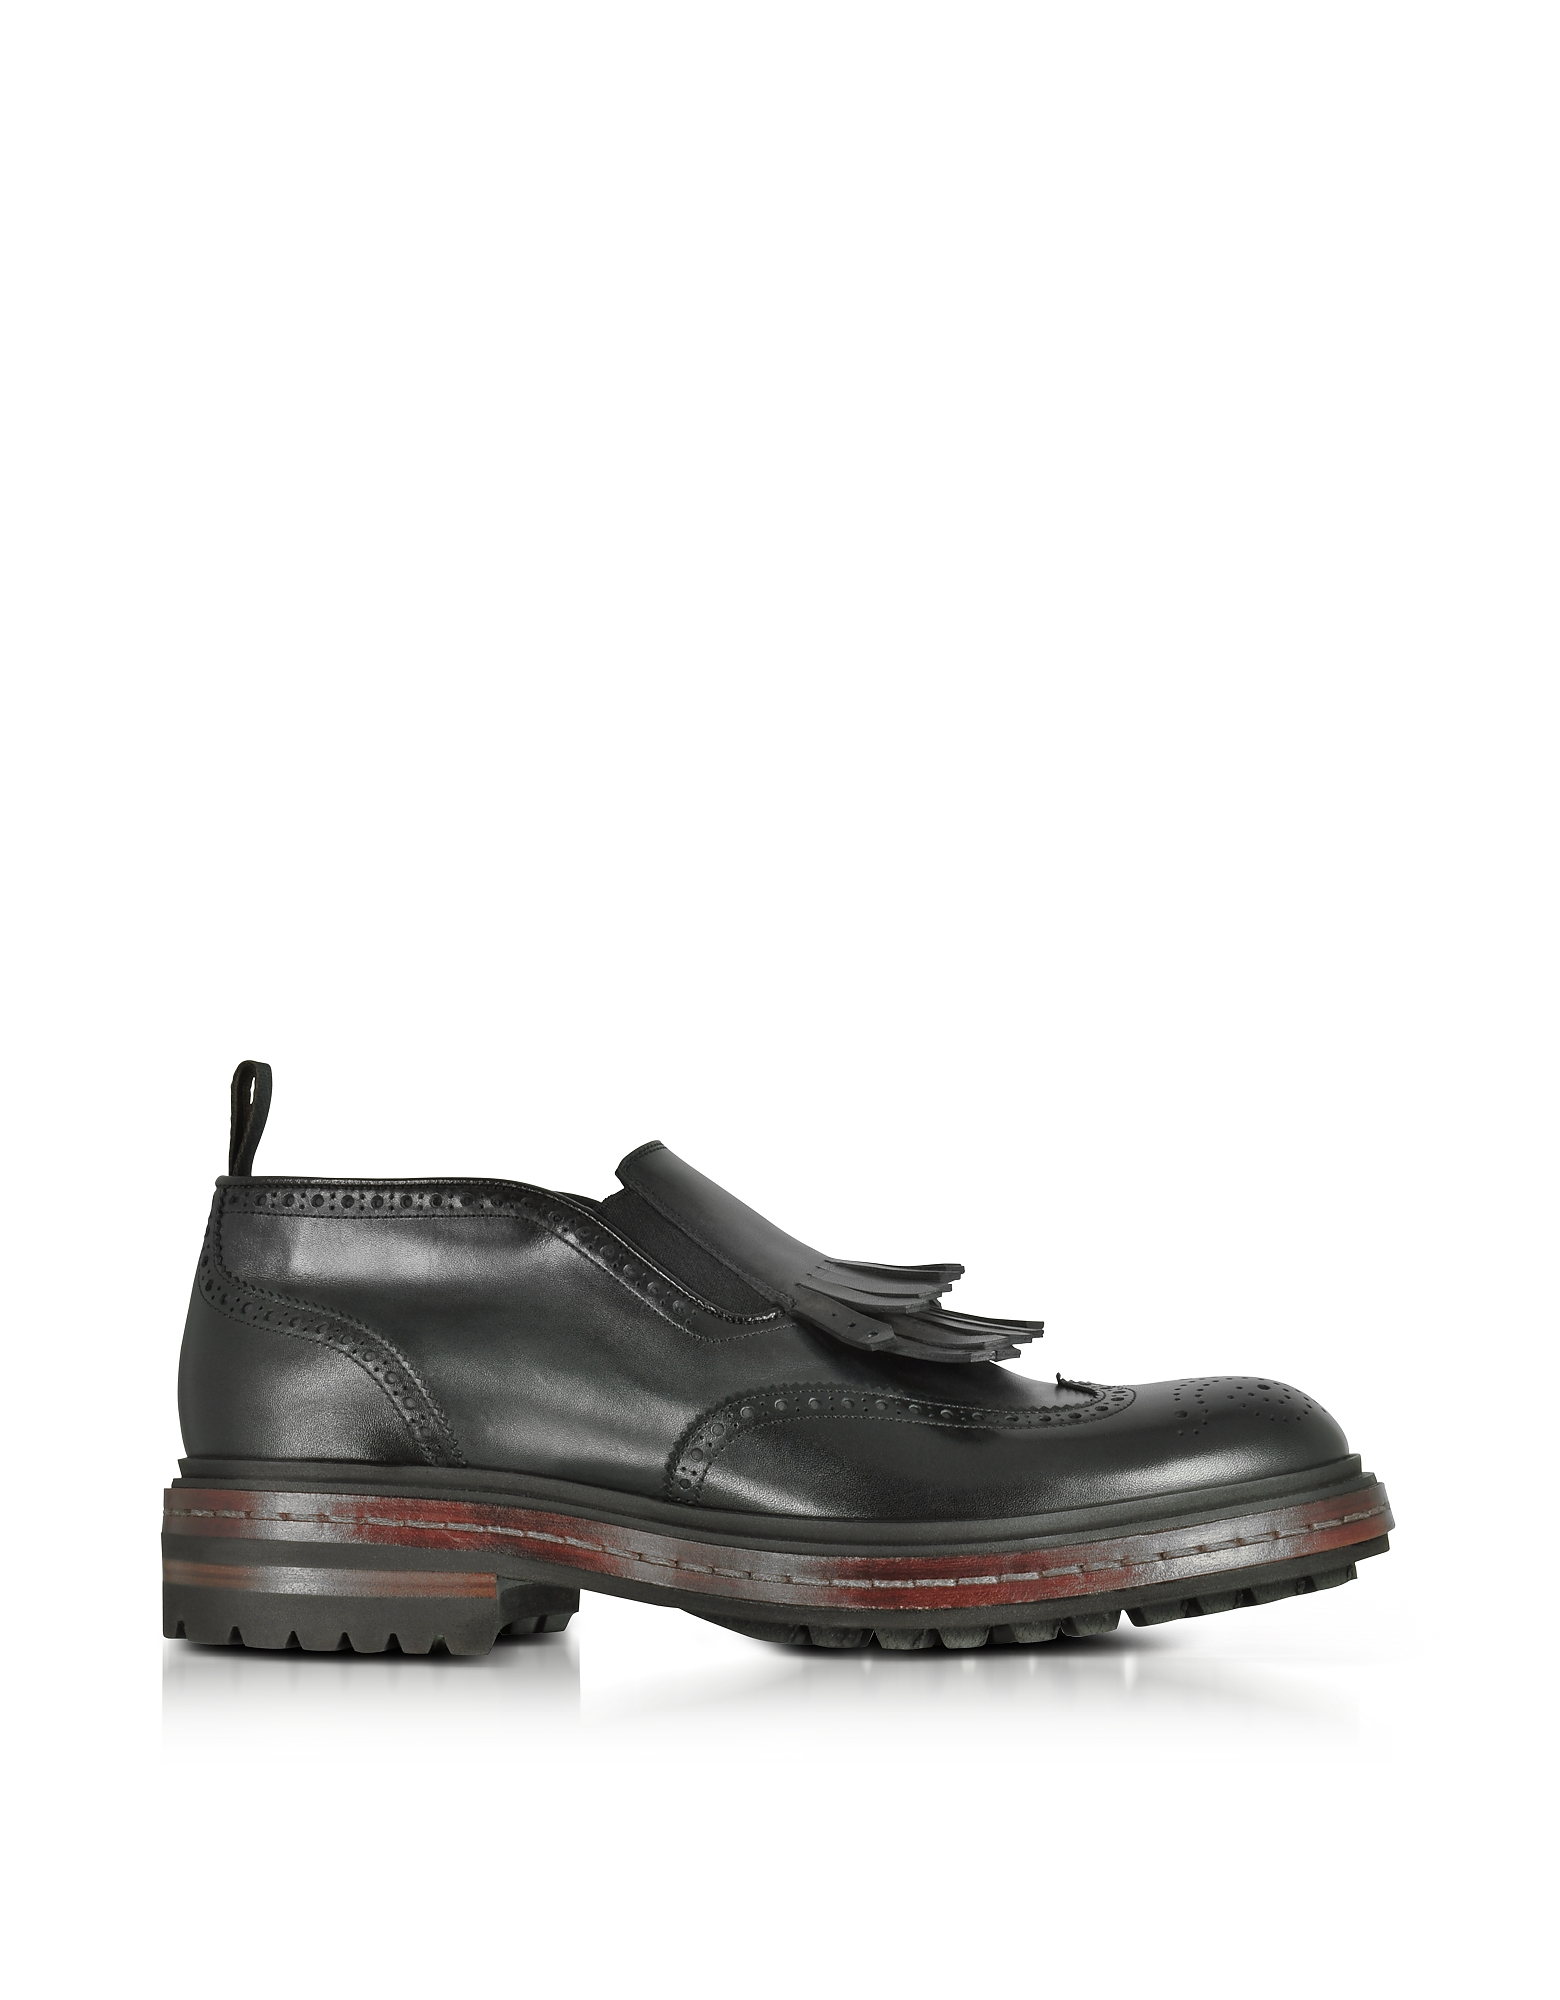 Santoni Shoes, Black Fringed Leather Ankle Boots